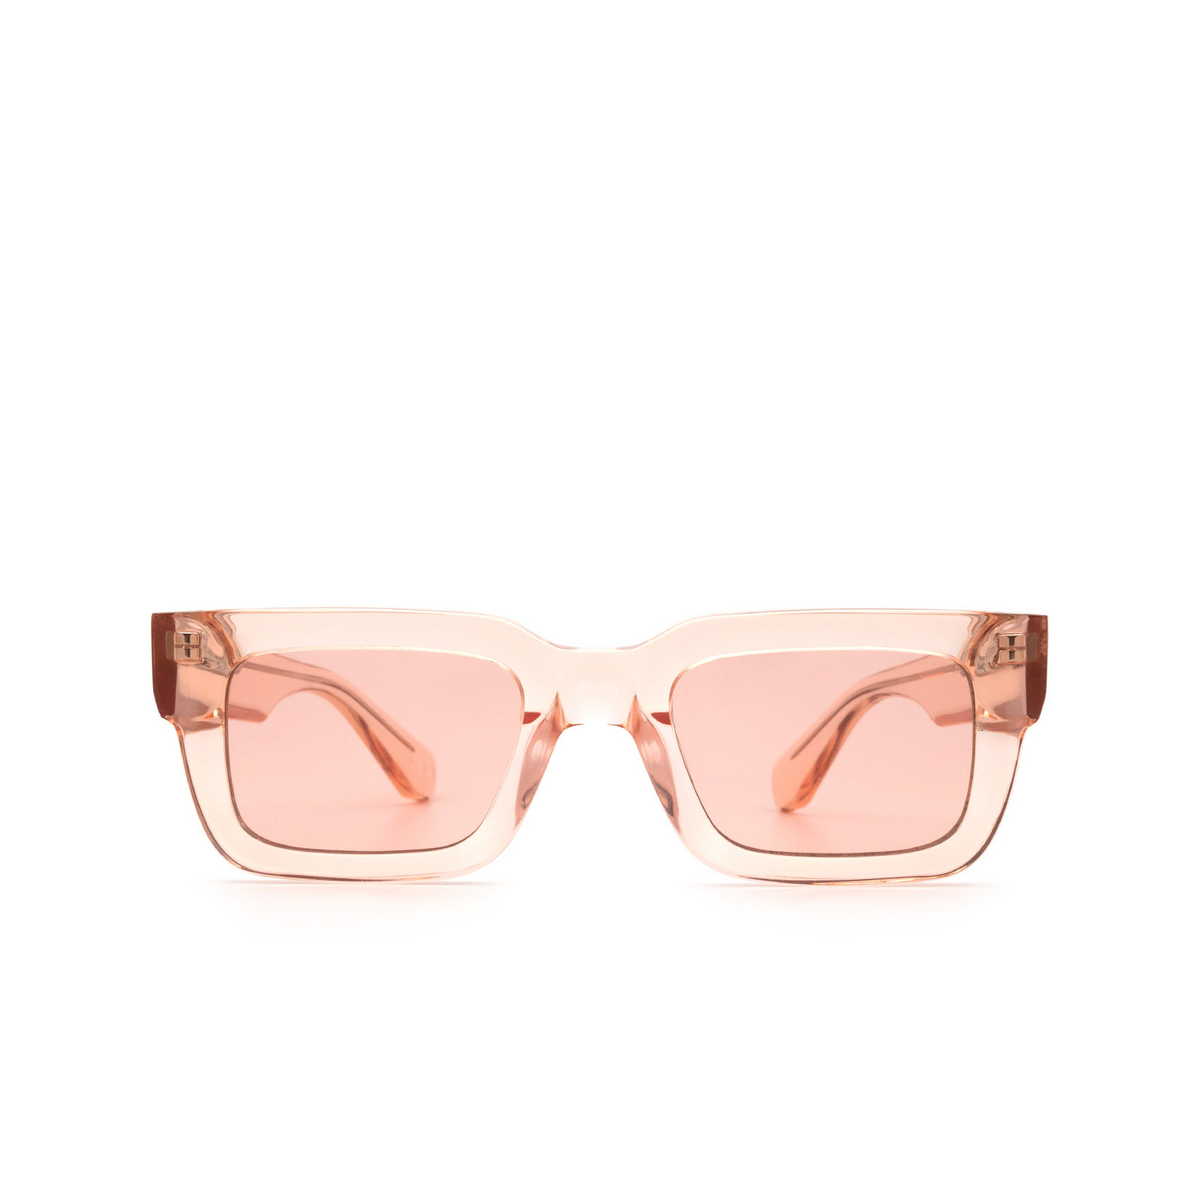 Chimi® Rectangle Sunglasses: 05 color Pink - front view.